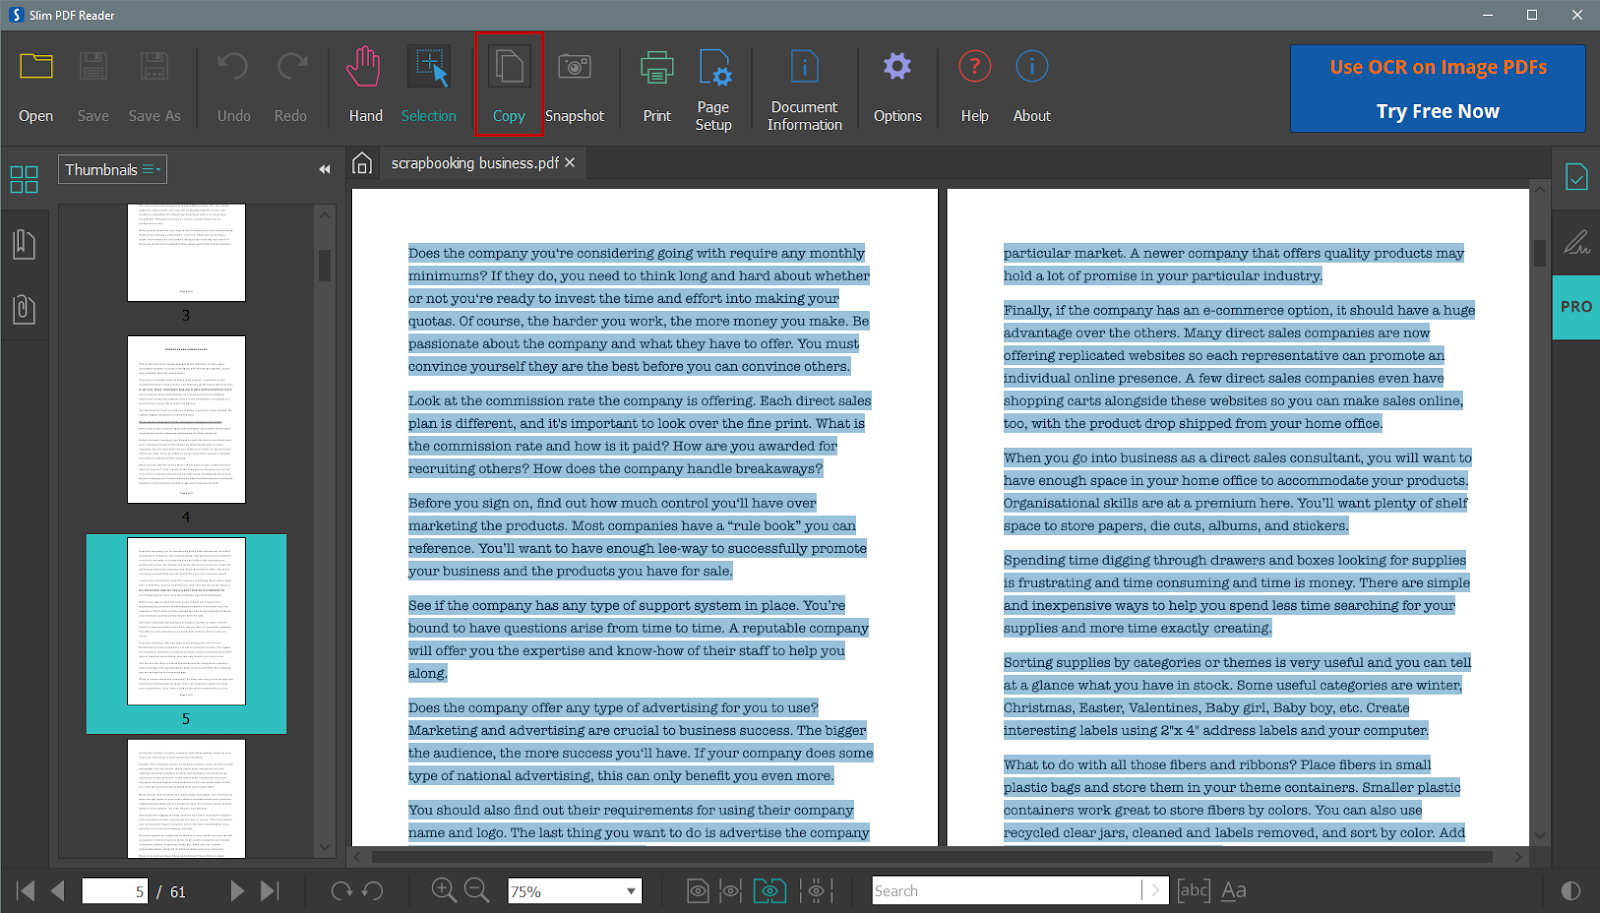 Copy all PDF text to clipboard in Slim PDF Reader